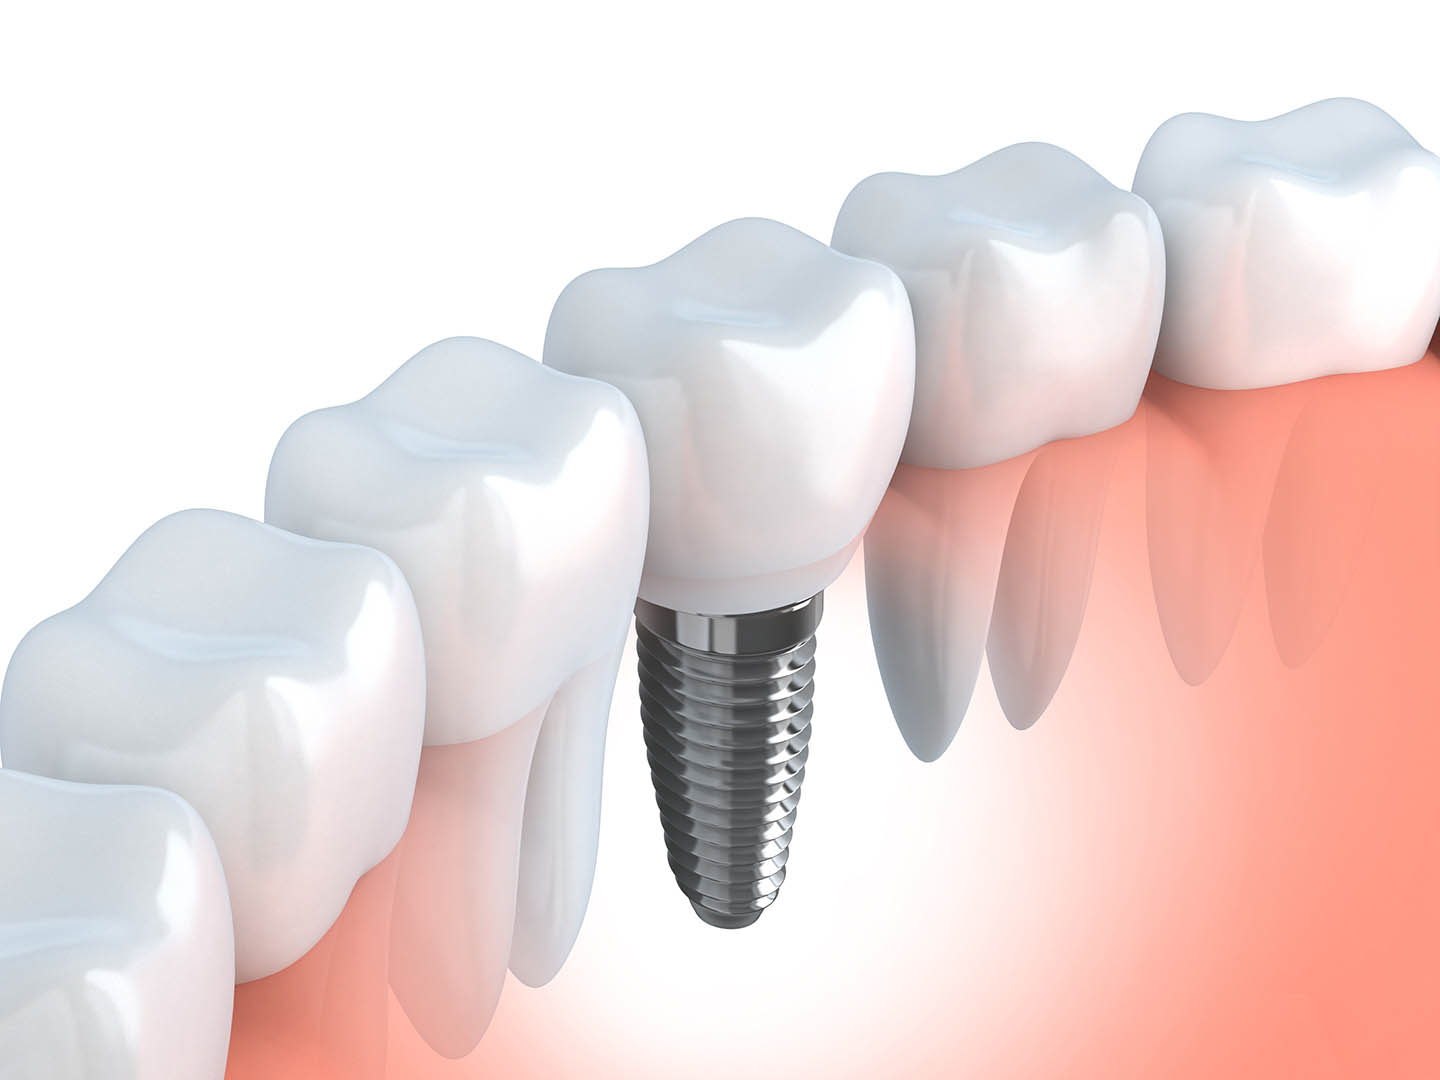 Graphic of single-tooth implants